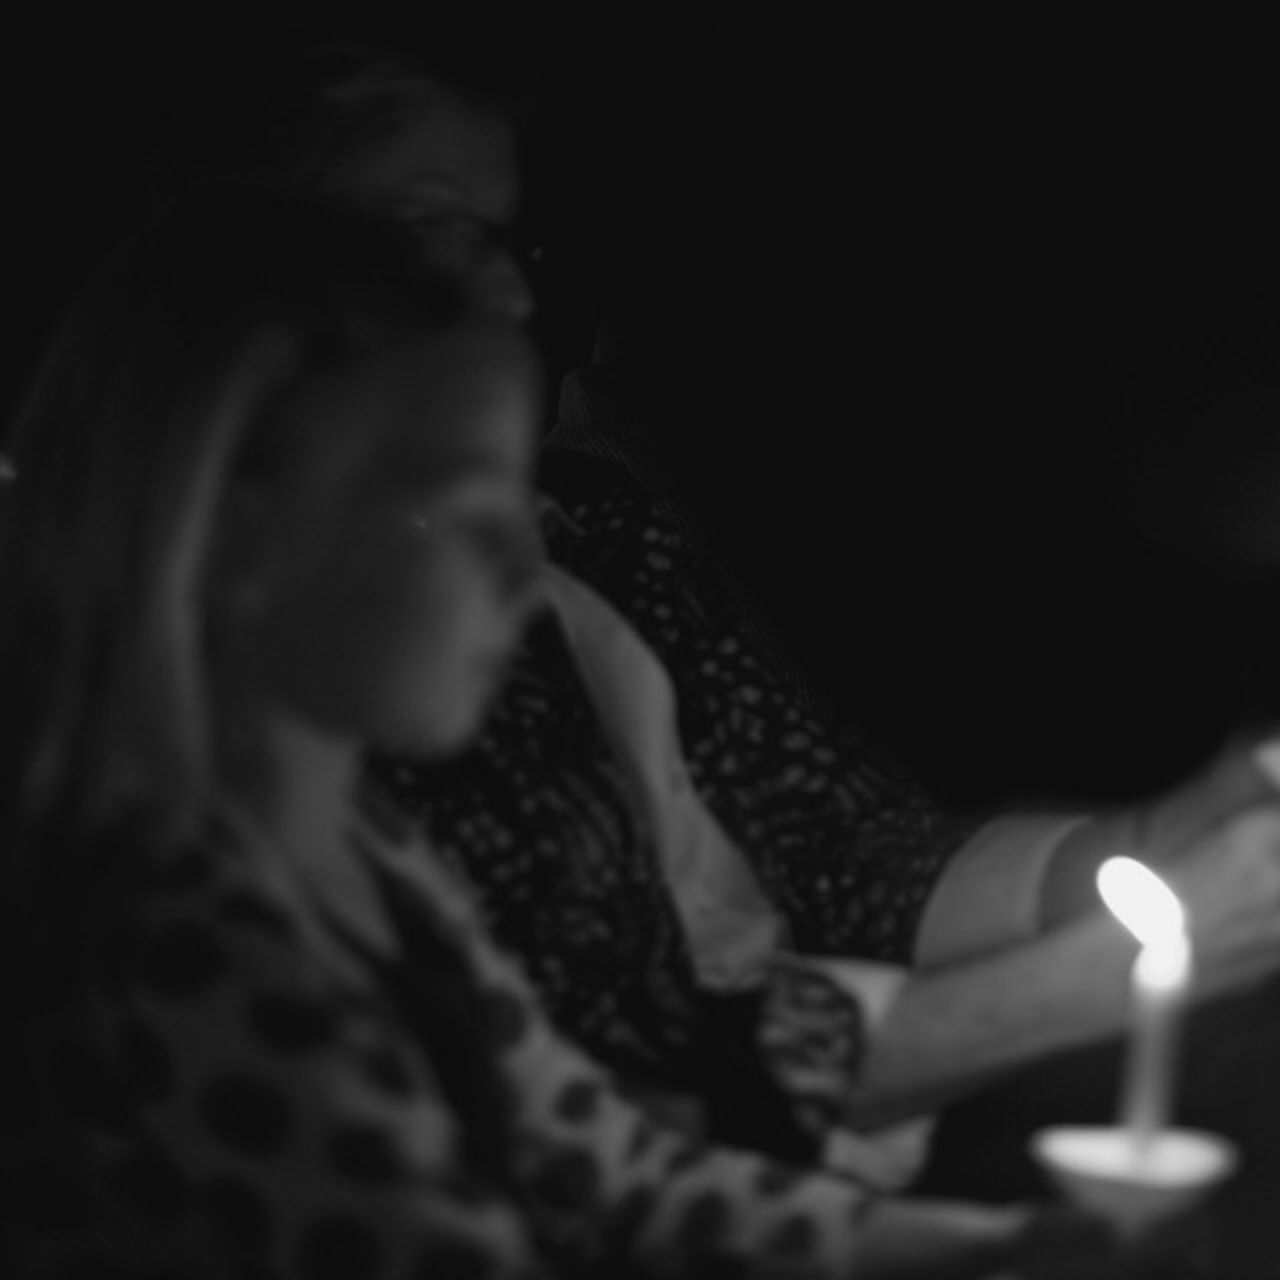 candle, flame, burning, indoors, real people, lifestyles, illuminated, togetherness, headshot, childhood, close-up, night, human hand, young adult, people